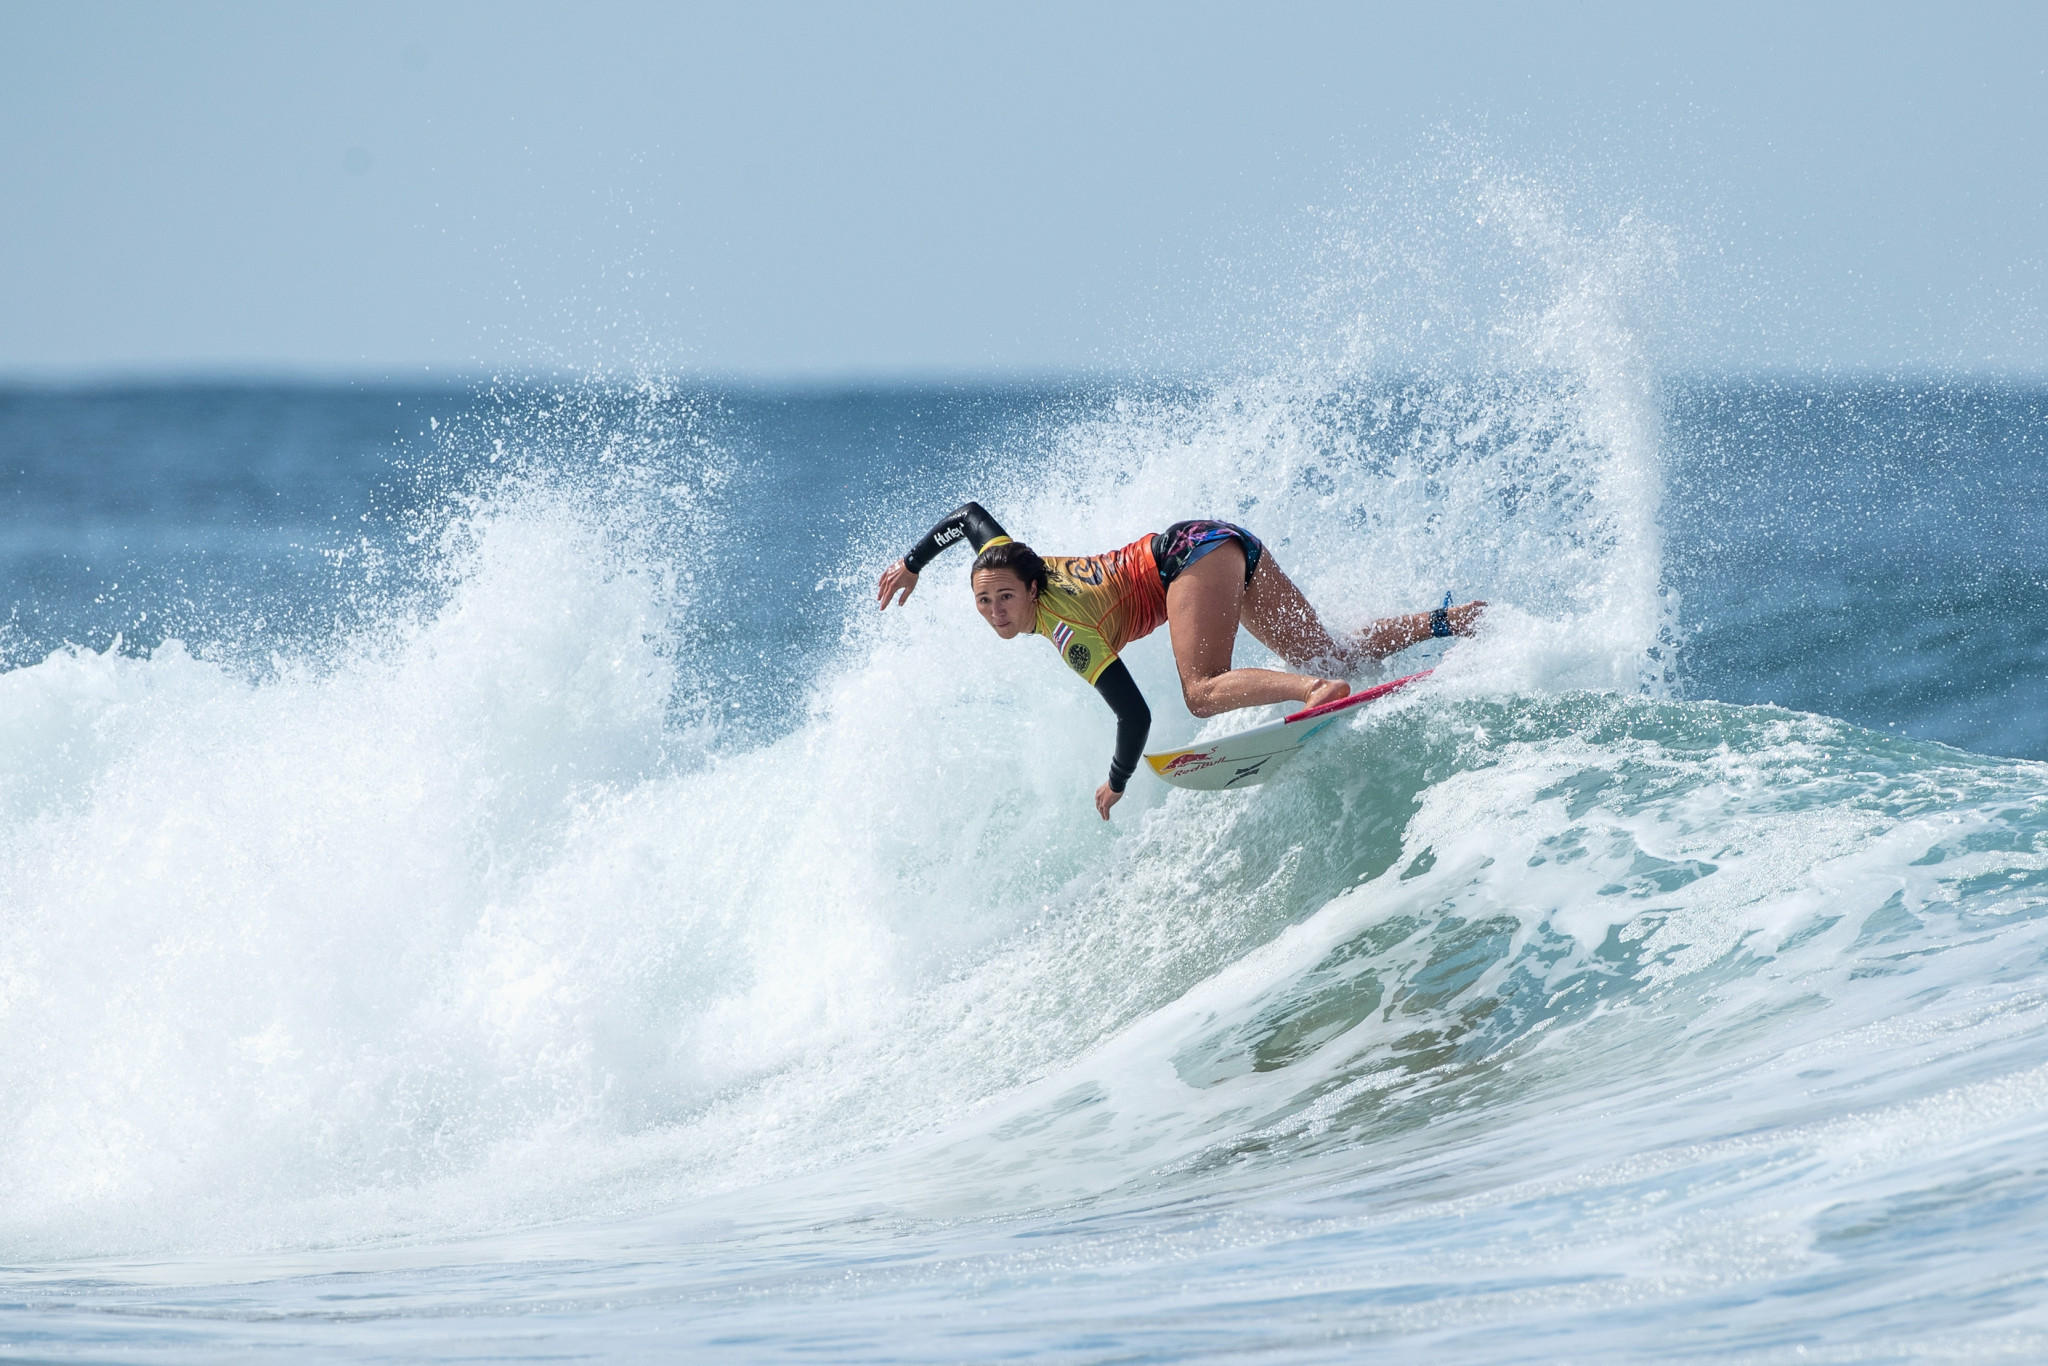 Carissa Moore advanced to the quarter-finals of the competition ©Getty Images